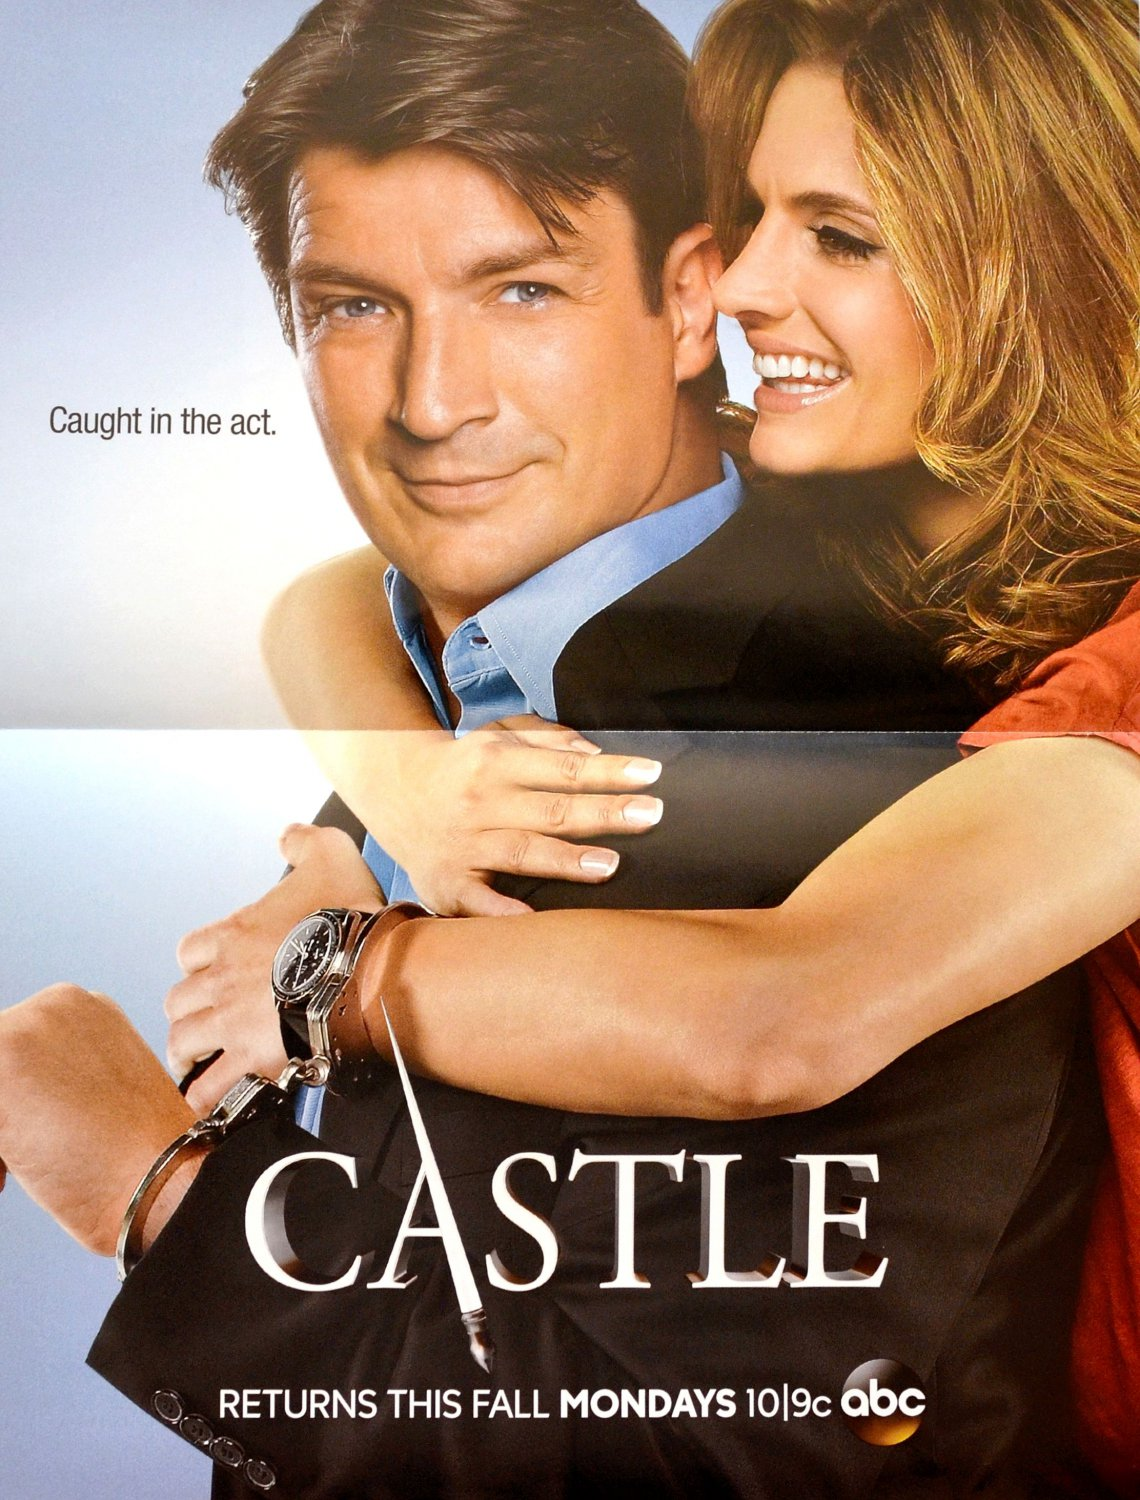 CASTLE 10x13 Exclusive DS Promo Poster - SDCC 2013 Nathan Fillion & Stana Katic Comic Con Swag